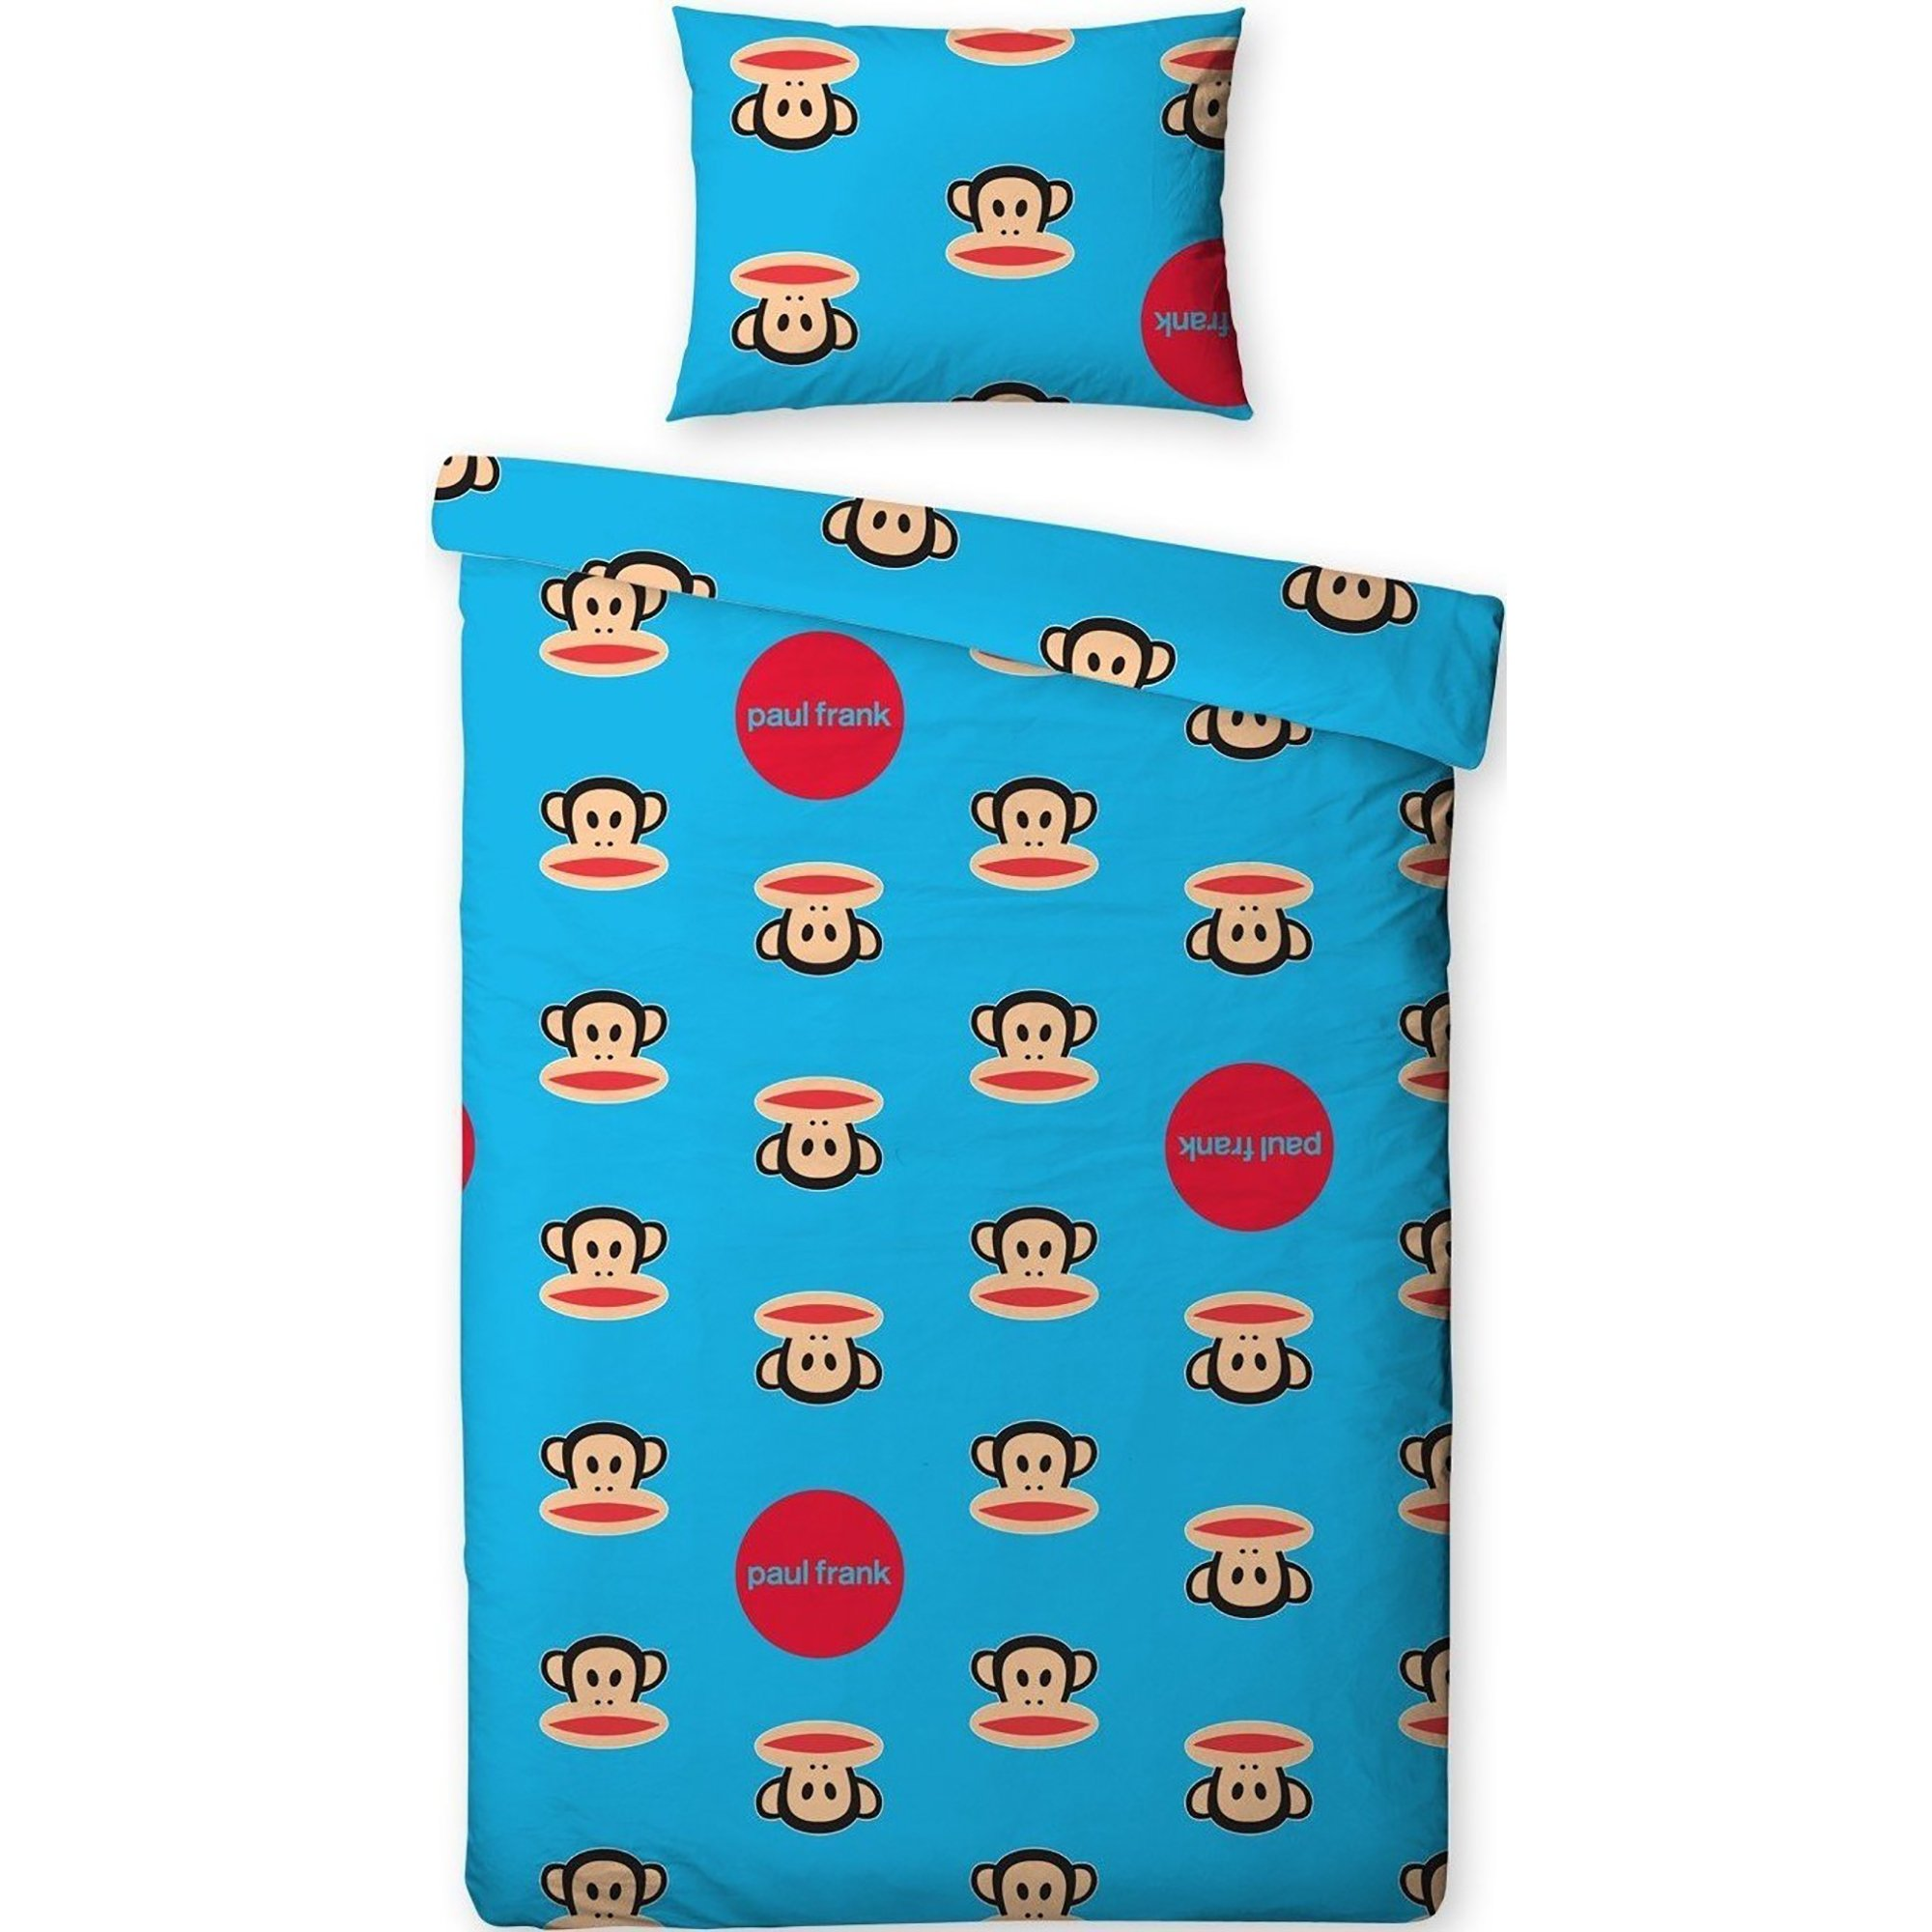 Paul Frank Childrens/Kids Spots Single/Twin Duvet Cover Pillowcase (Twin Bed) (Blue)